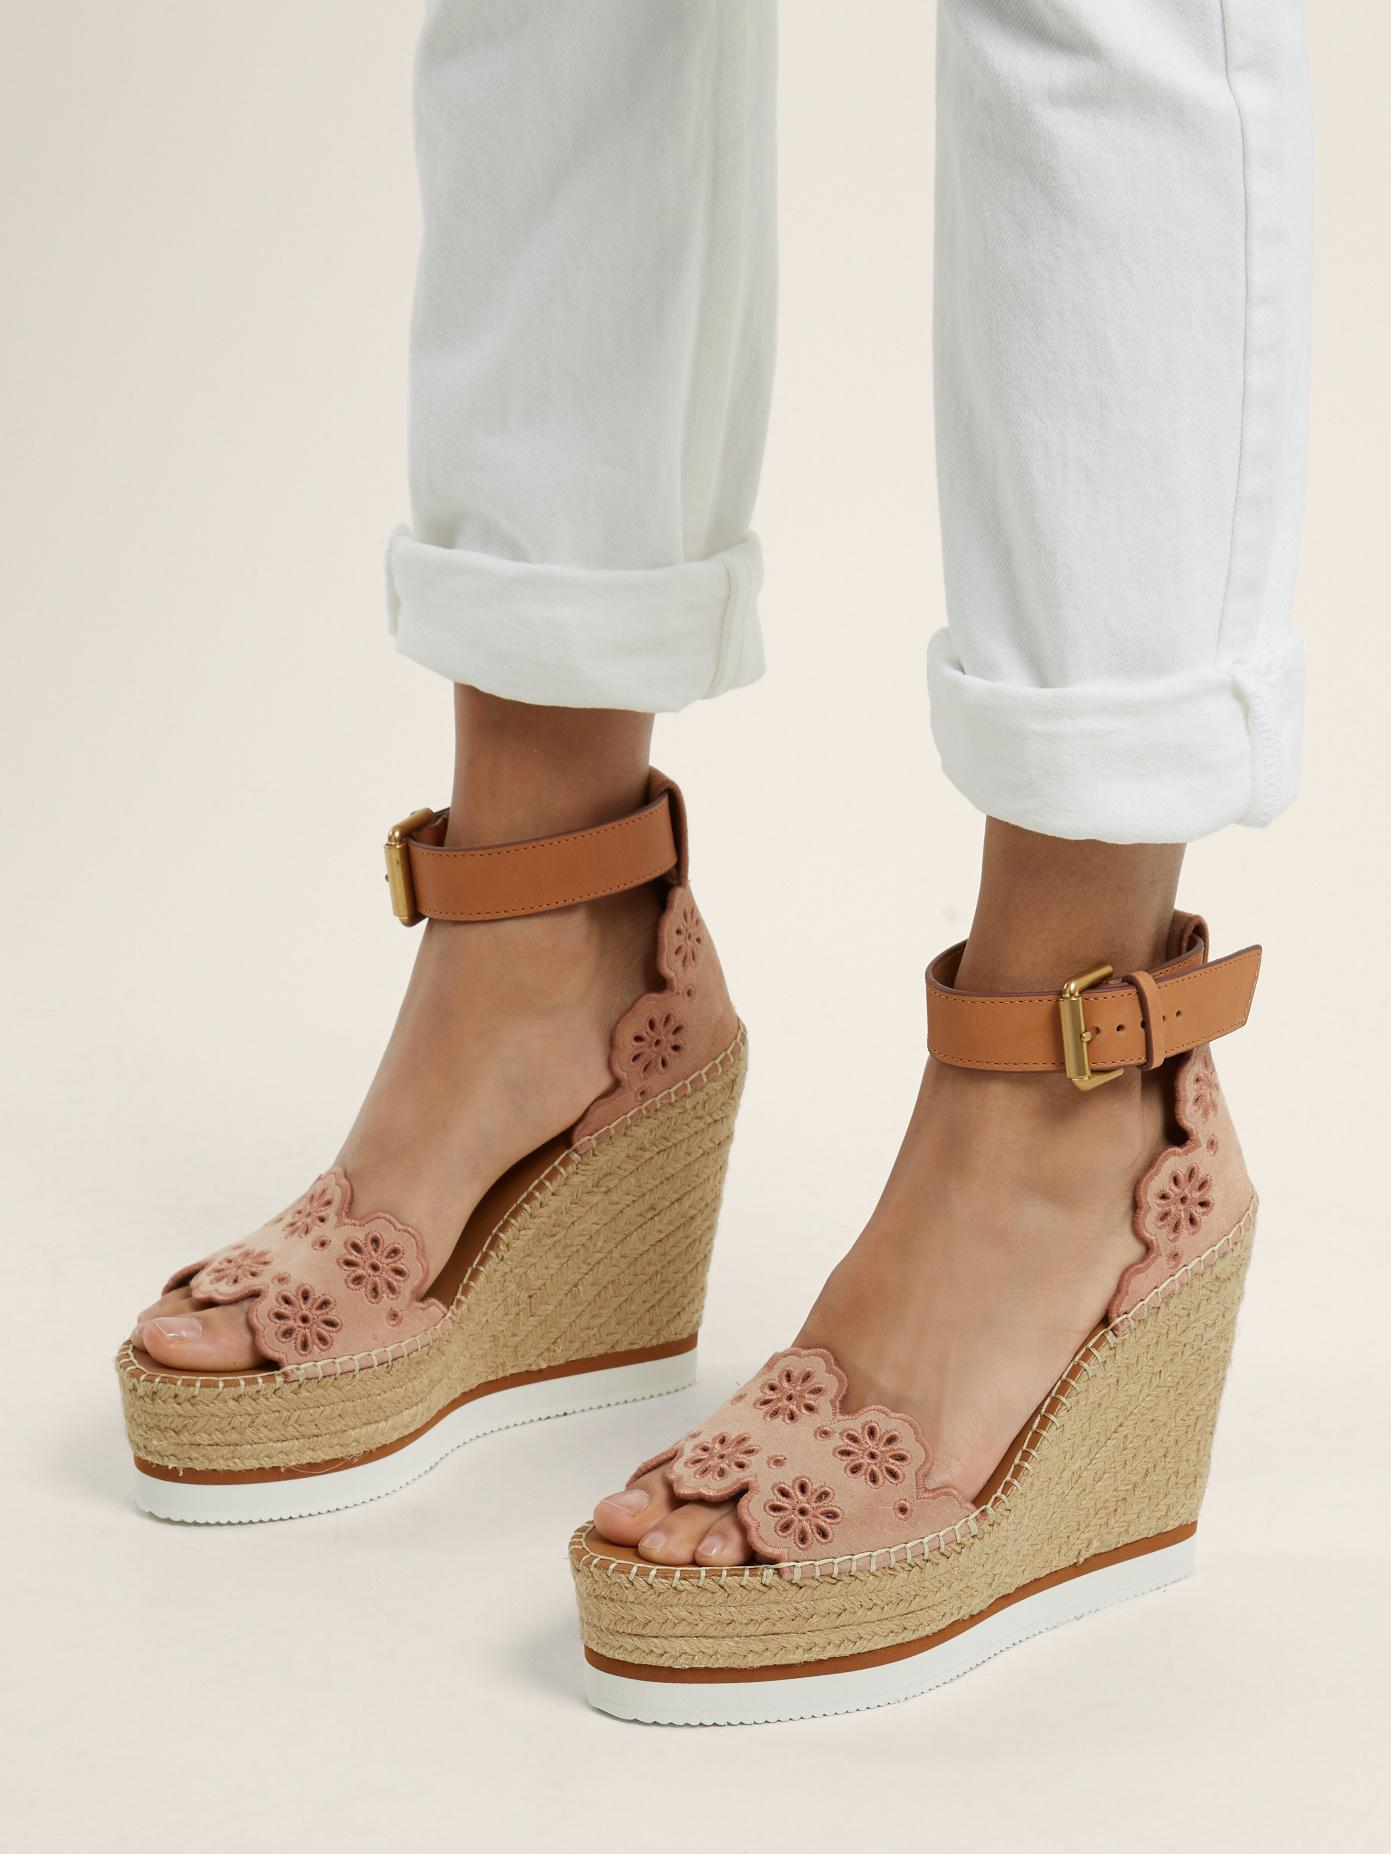 4abfef2b3610 Lyst - See By Chloé Flower Laser-cut Suede Wedge Espadrilles in Natural